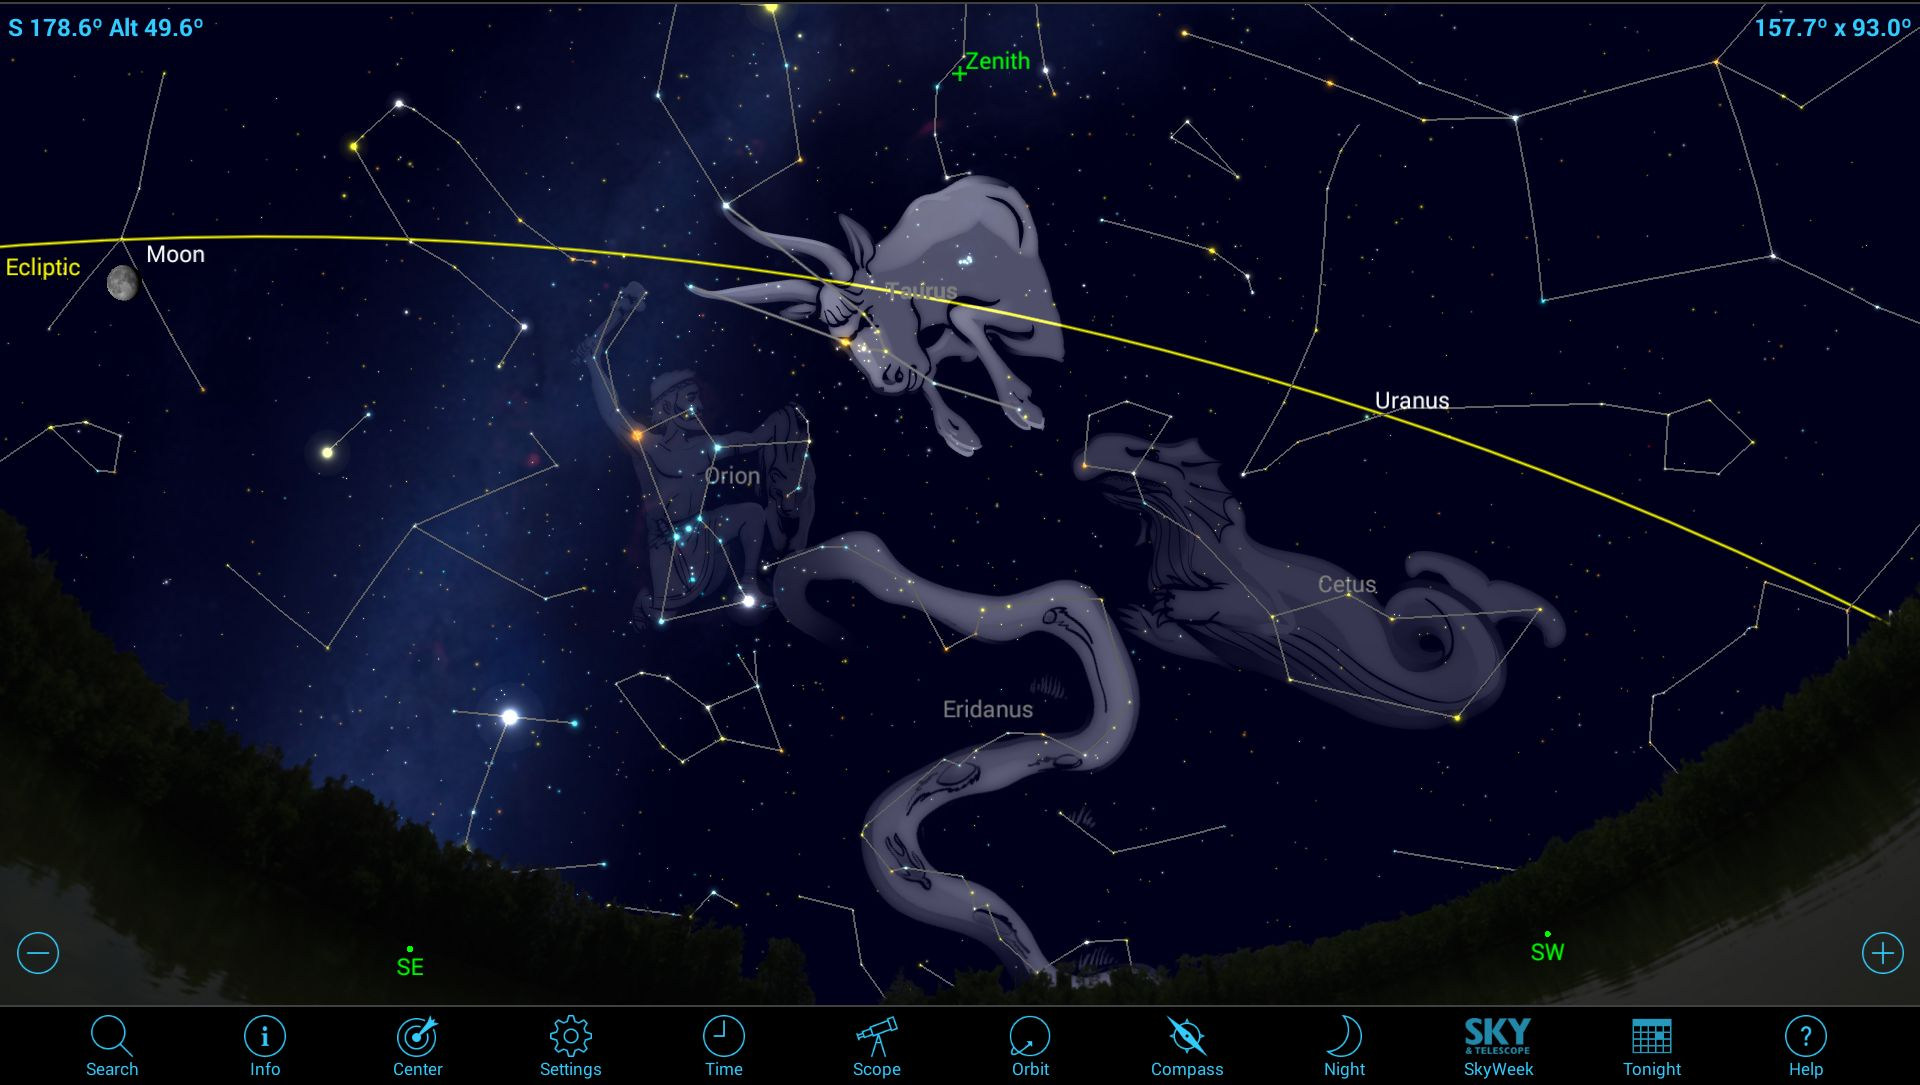 Touring the Treats of Taurus Using Mobile Astronomy Apps